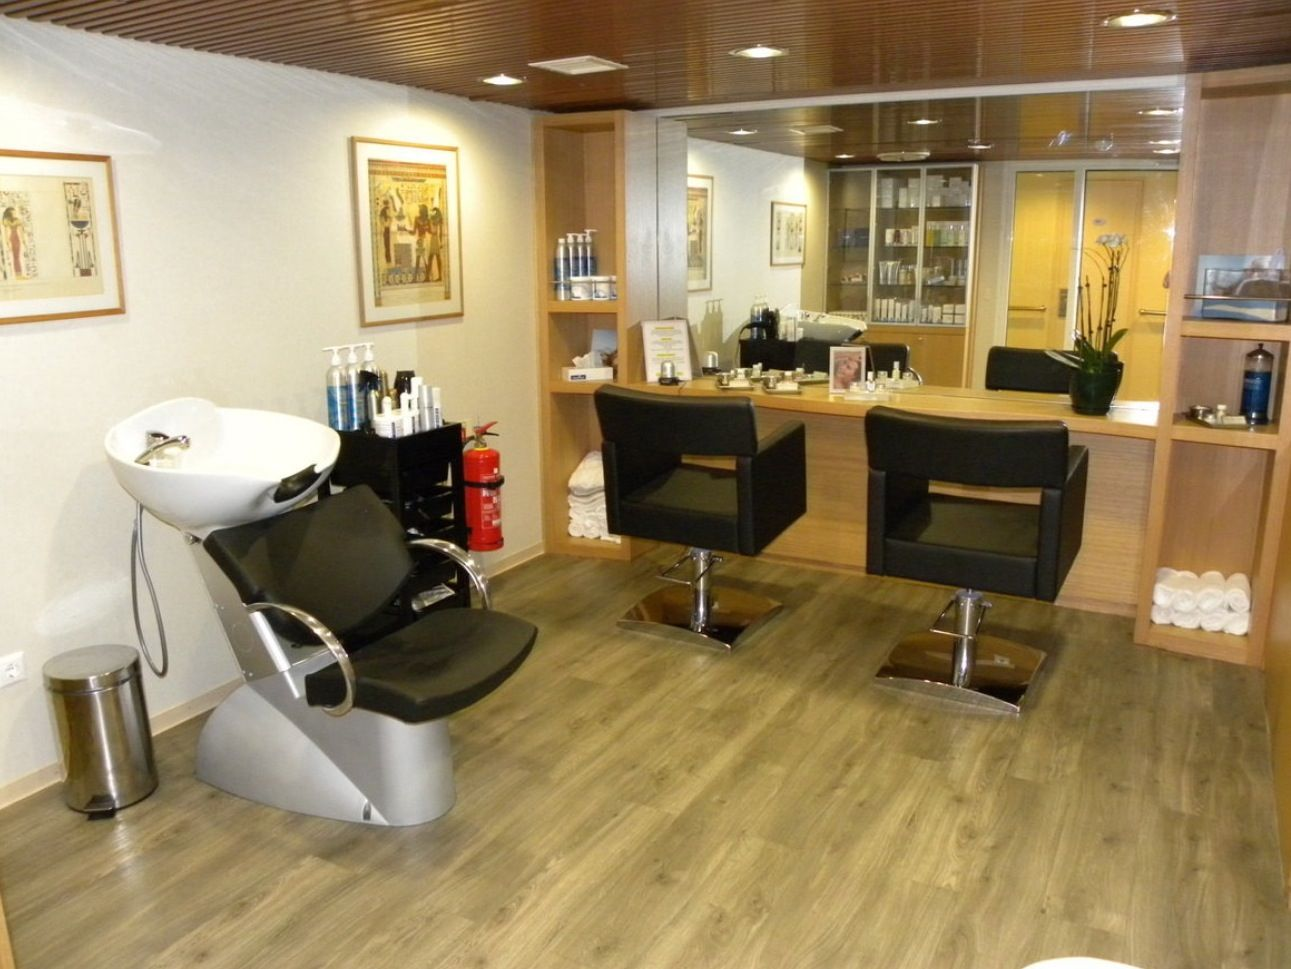 Salon Ideas Design small hair salon design ideas beauty salon floor planshair salon design hair Small Salon Perfect Want Want Want Just For Me